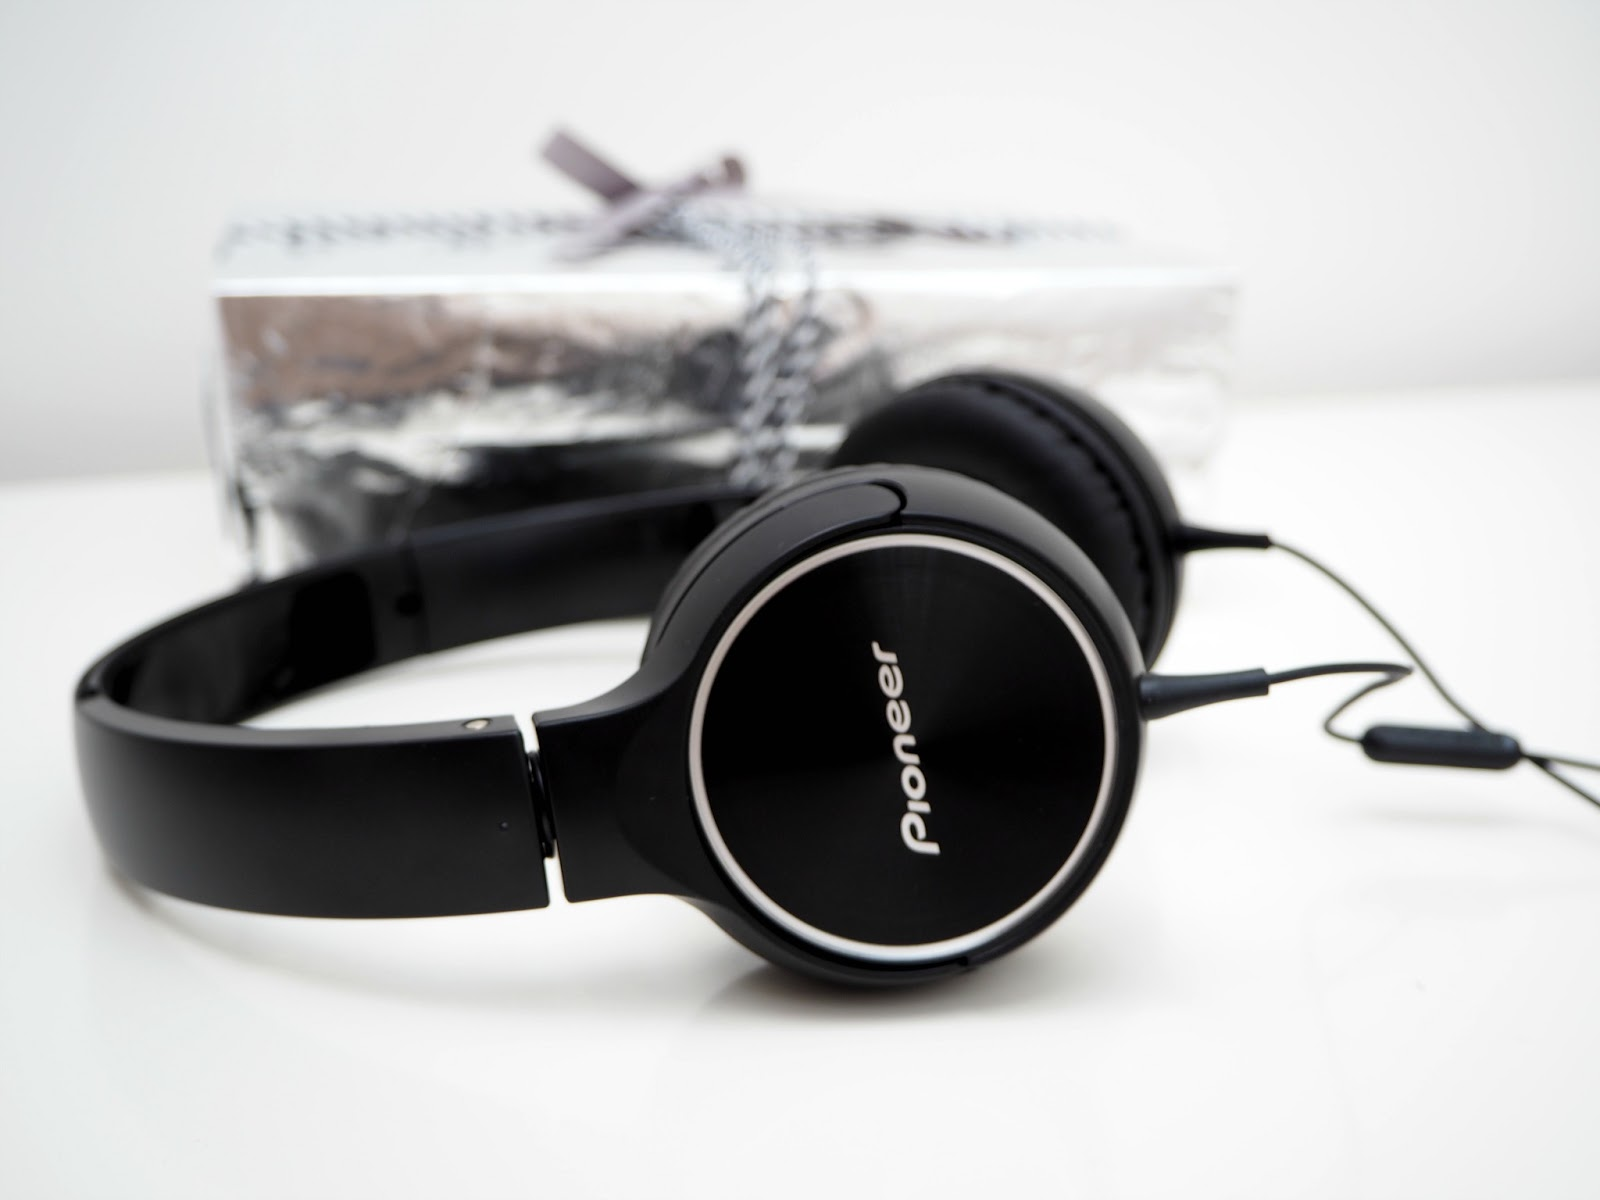 Pioneer headphones gift idea for him debenhams